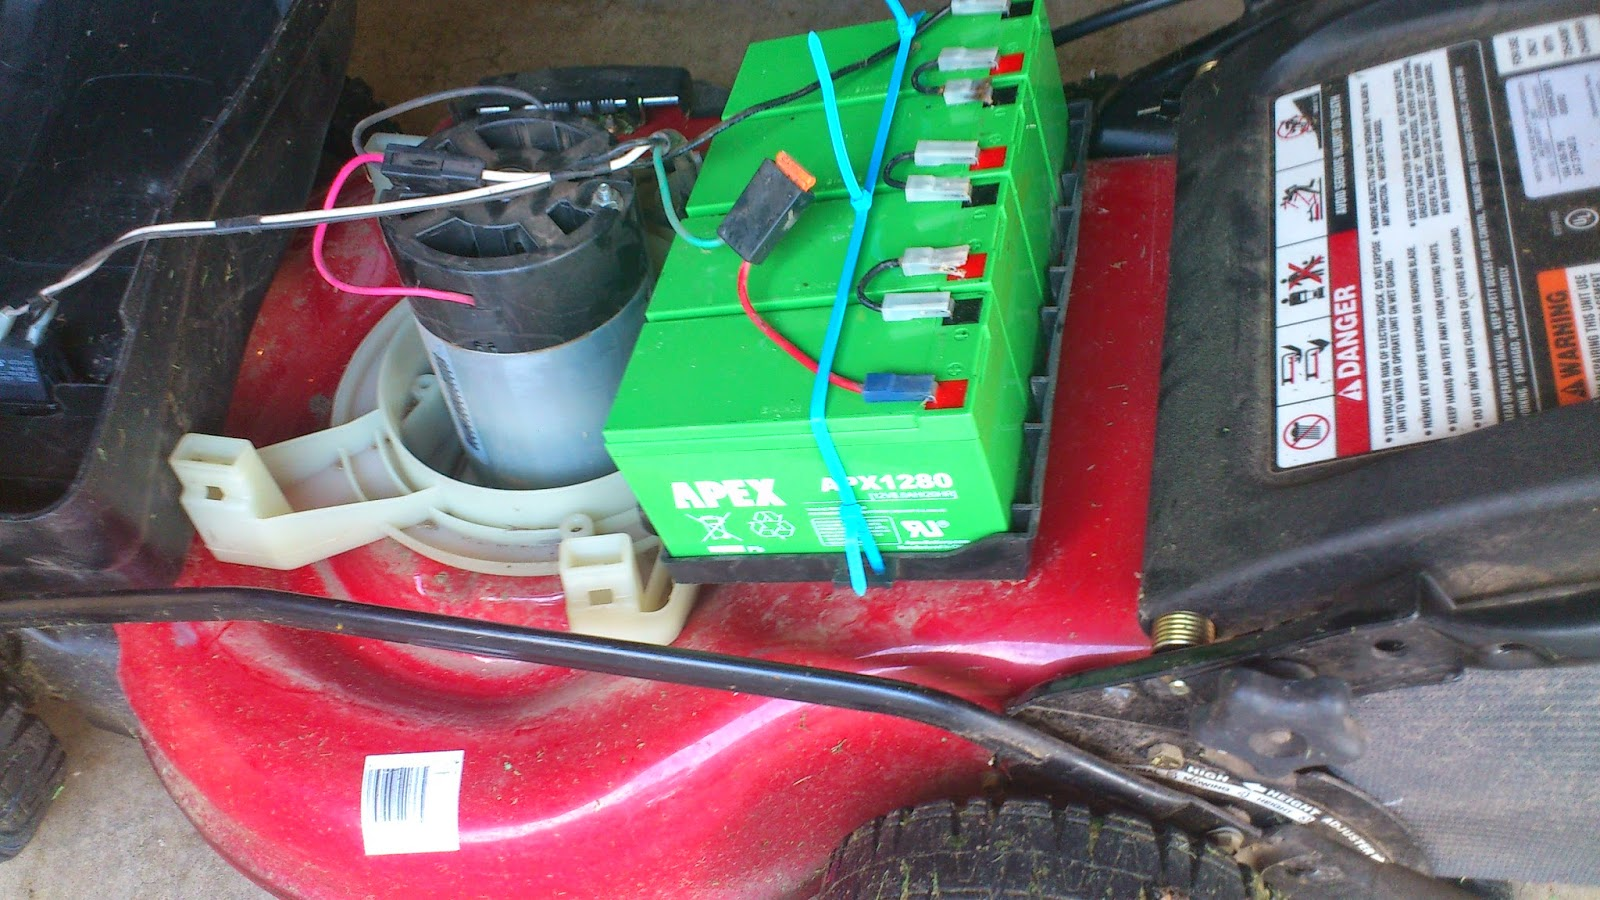 Hanix Diy Public Repairing My Craftman Electric Lawn Mower